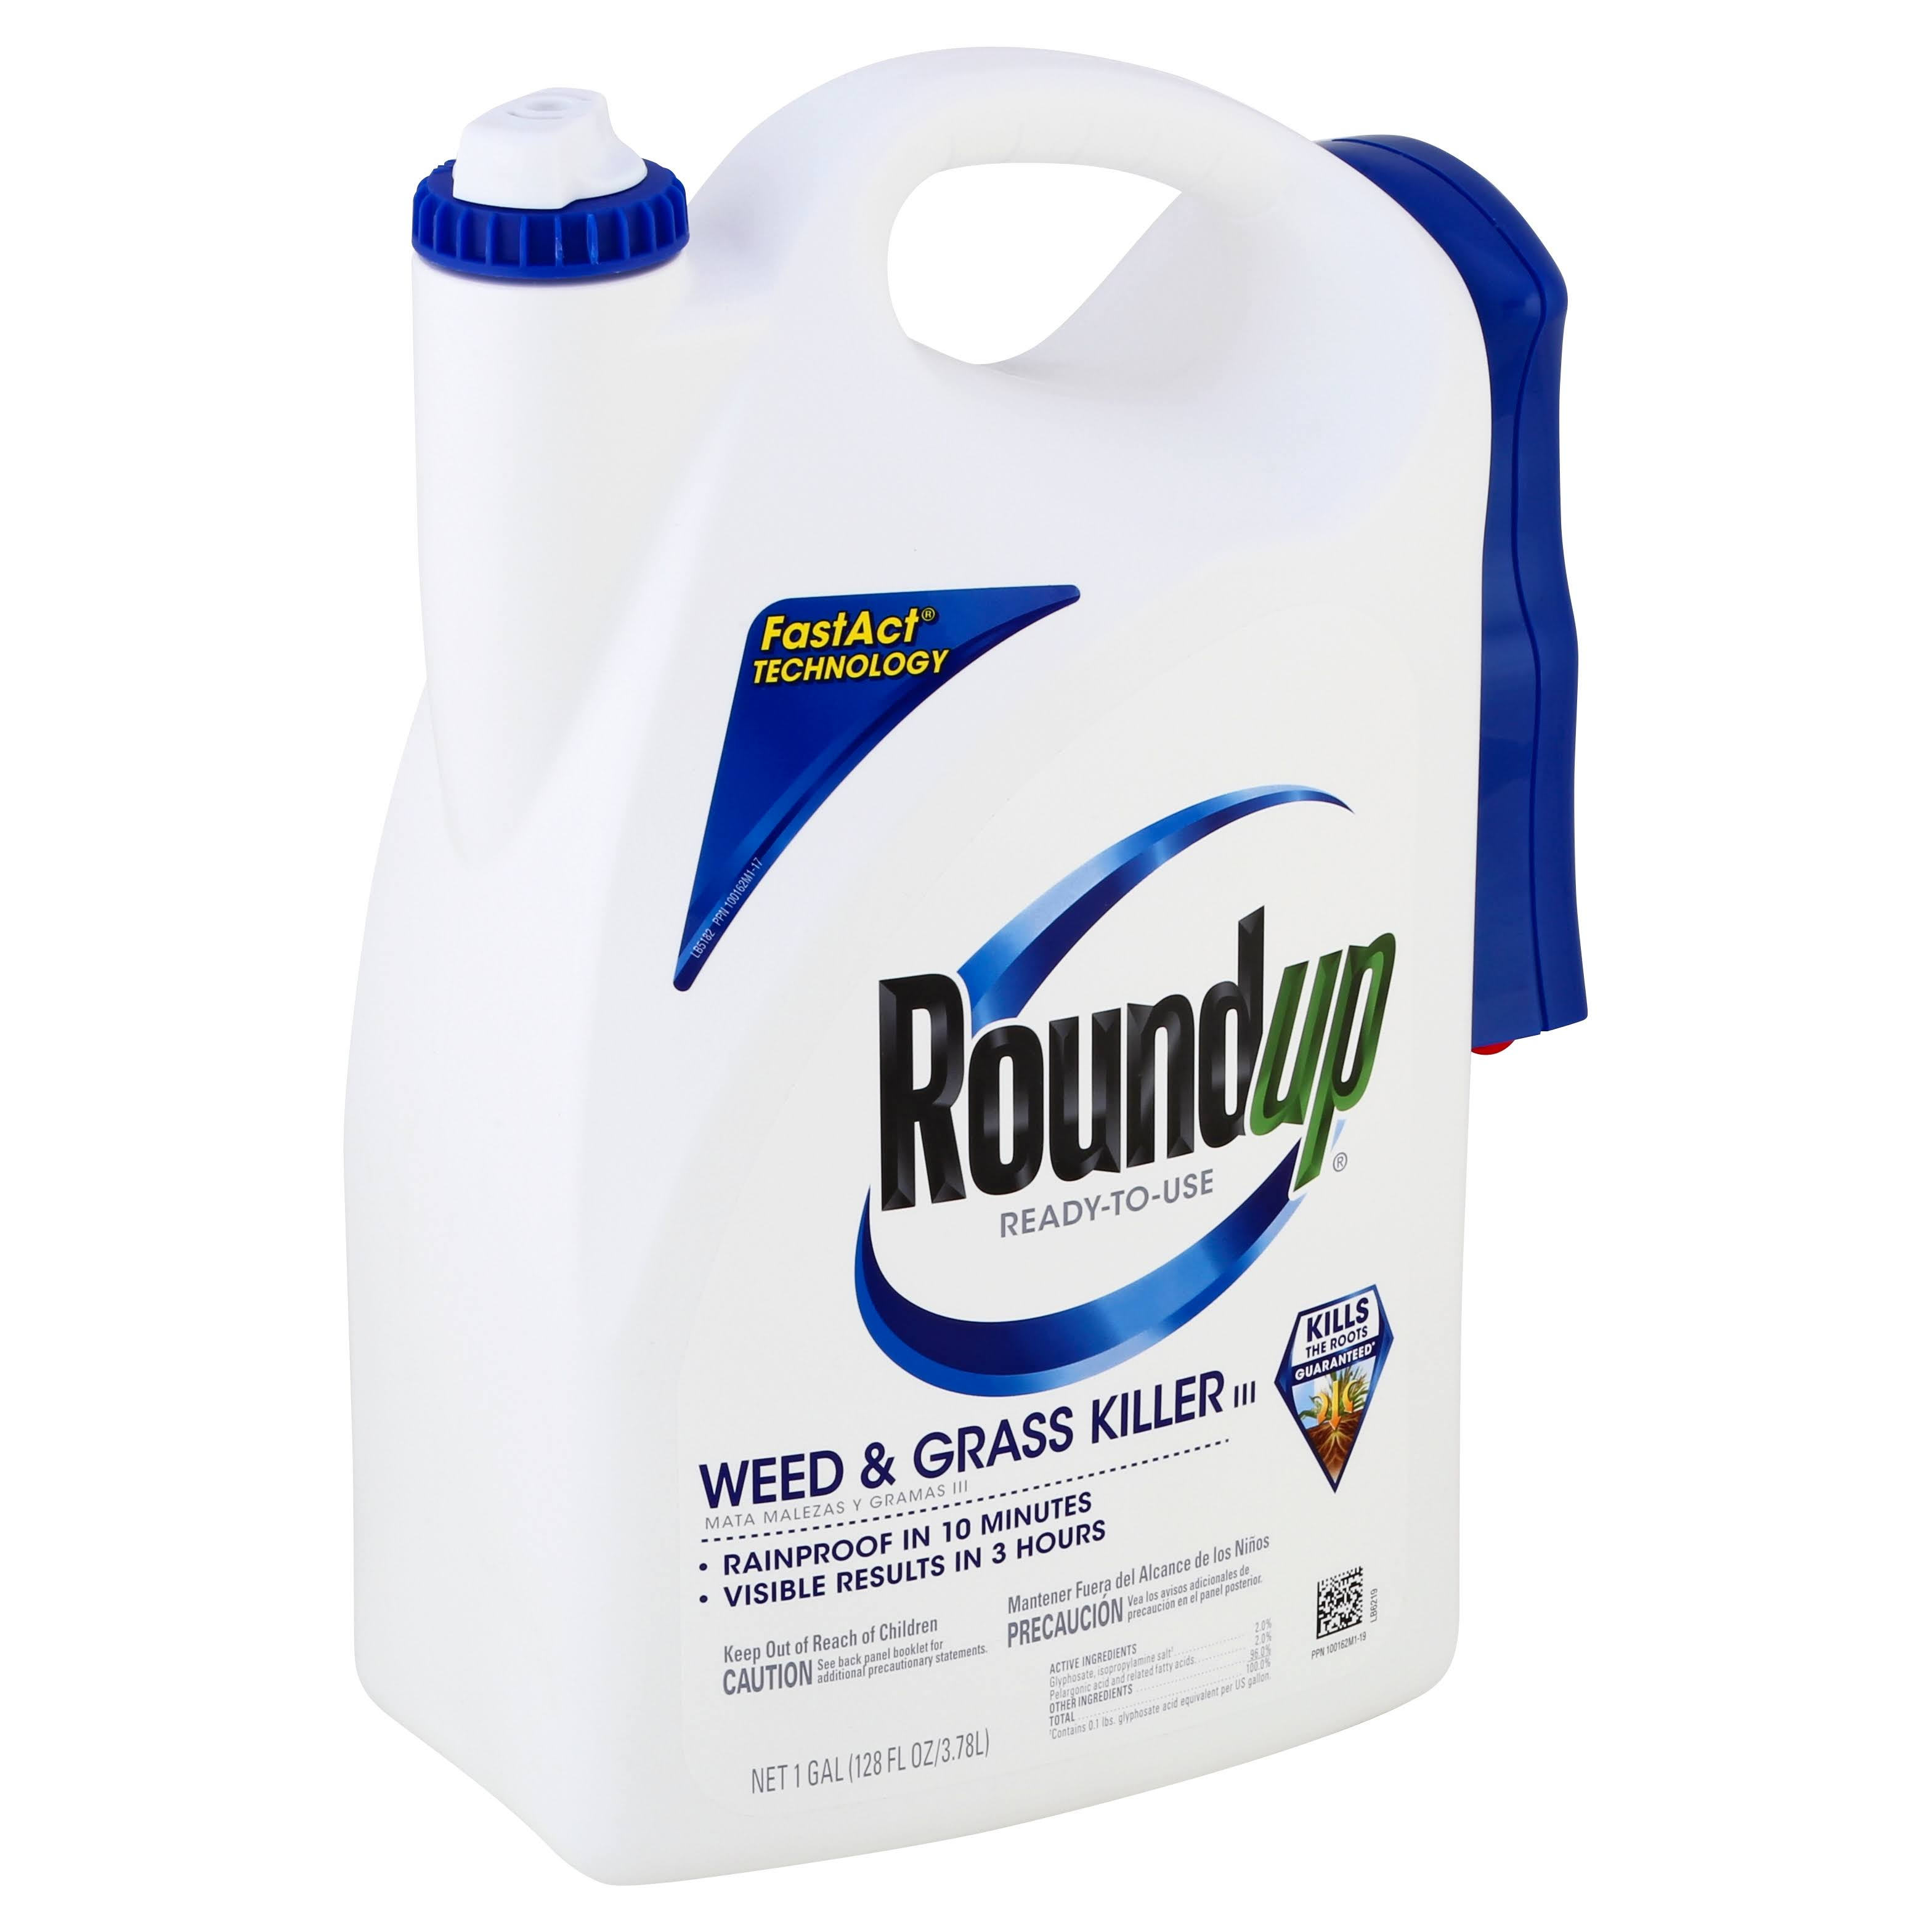 Roundup Ready-to-Use Plus Weed & Grass Killer - 1 Gallon